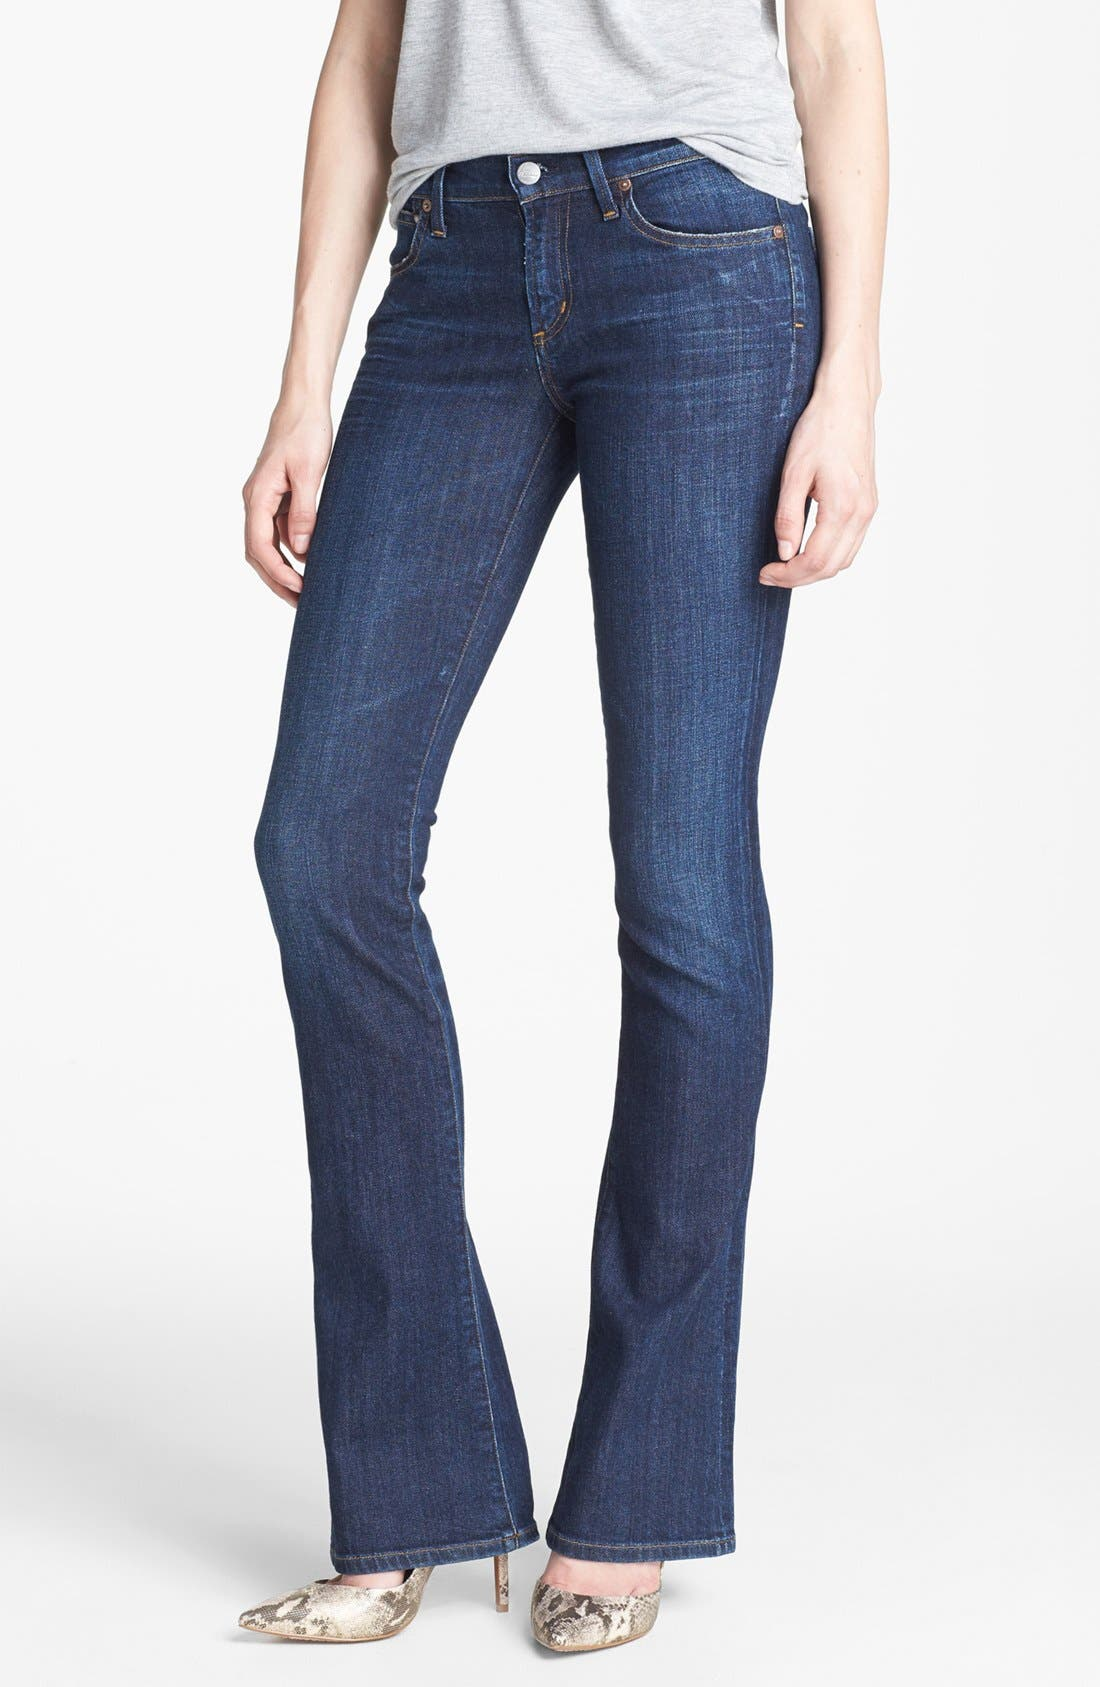 Alternate Image 1 Selected - Citizens of Humanity 'Emmanuelle' Slim Bootcut Jeans (Element)